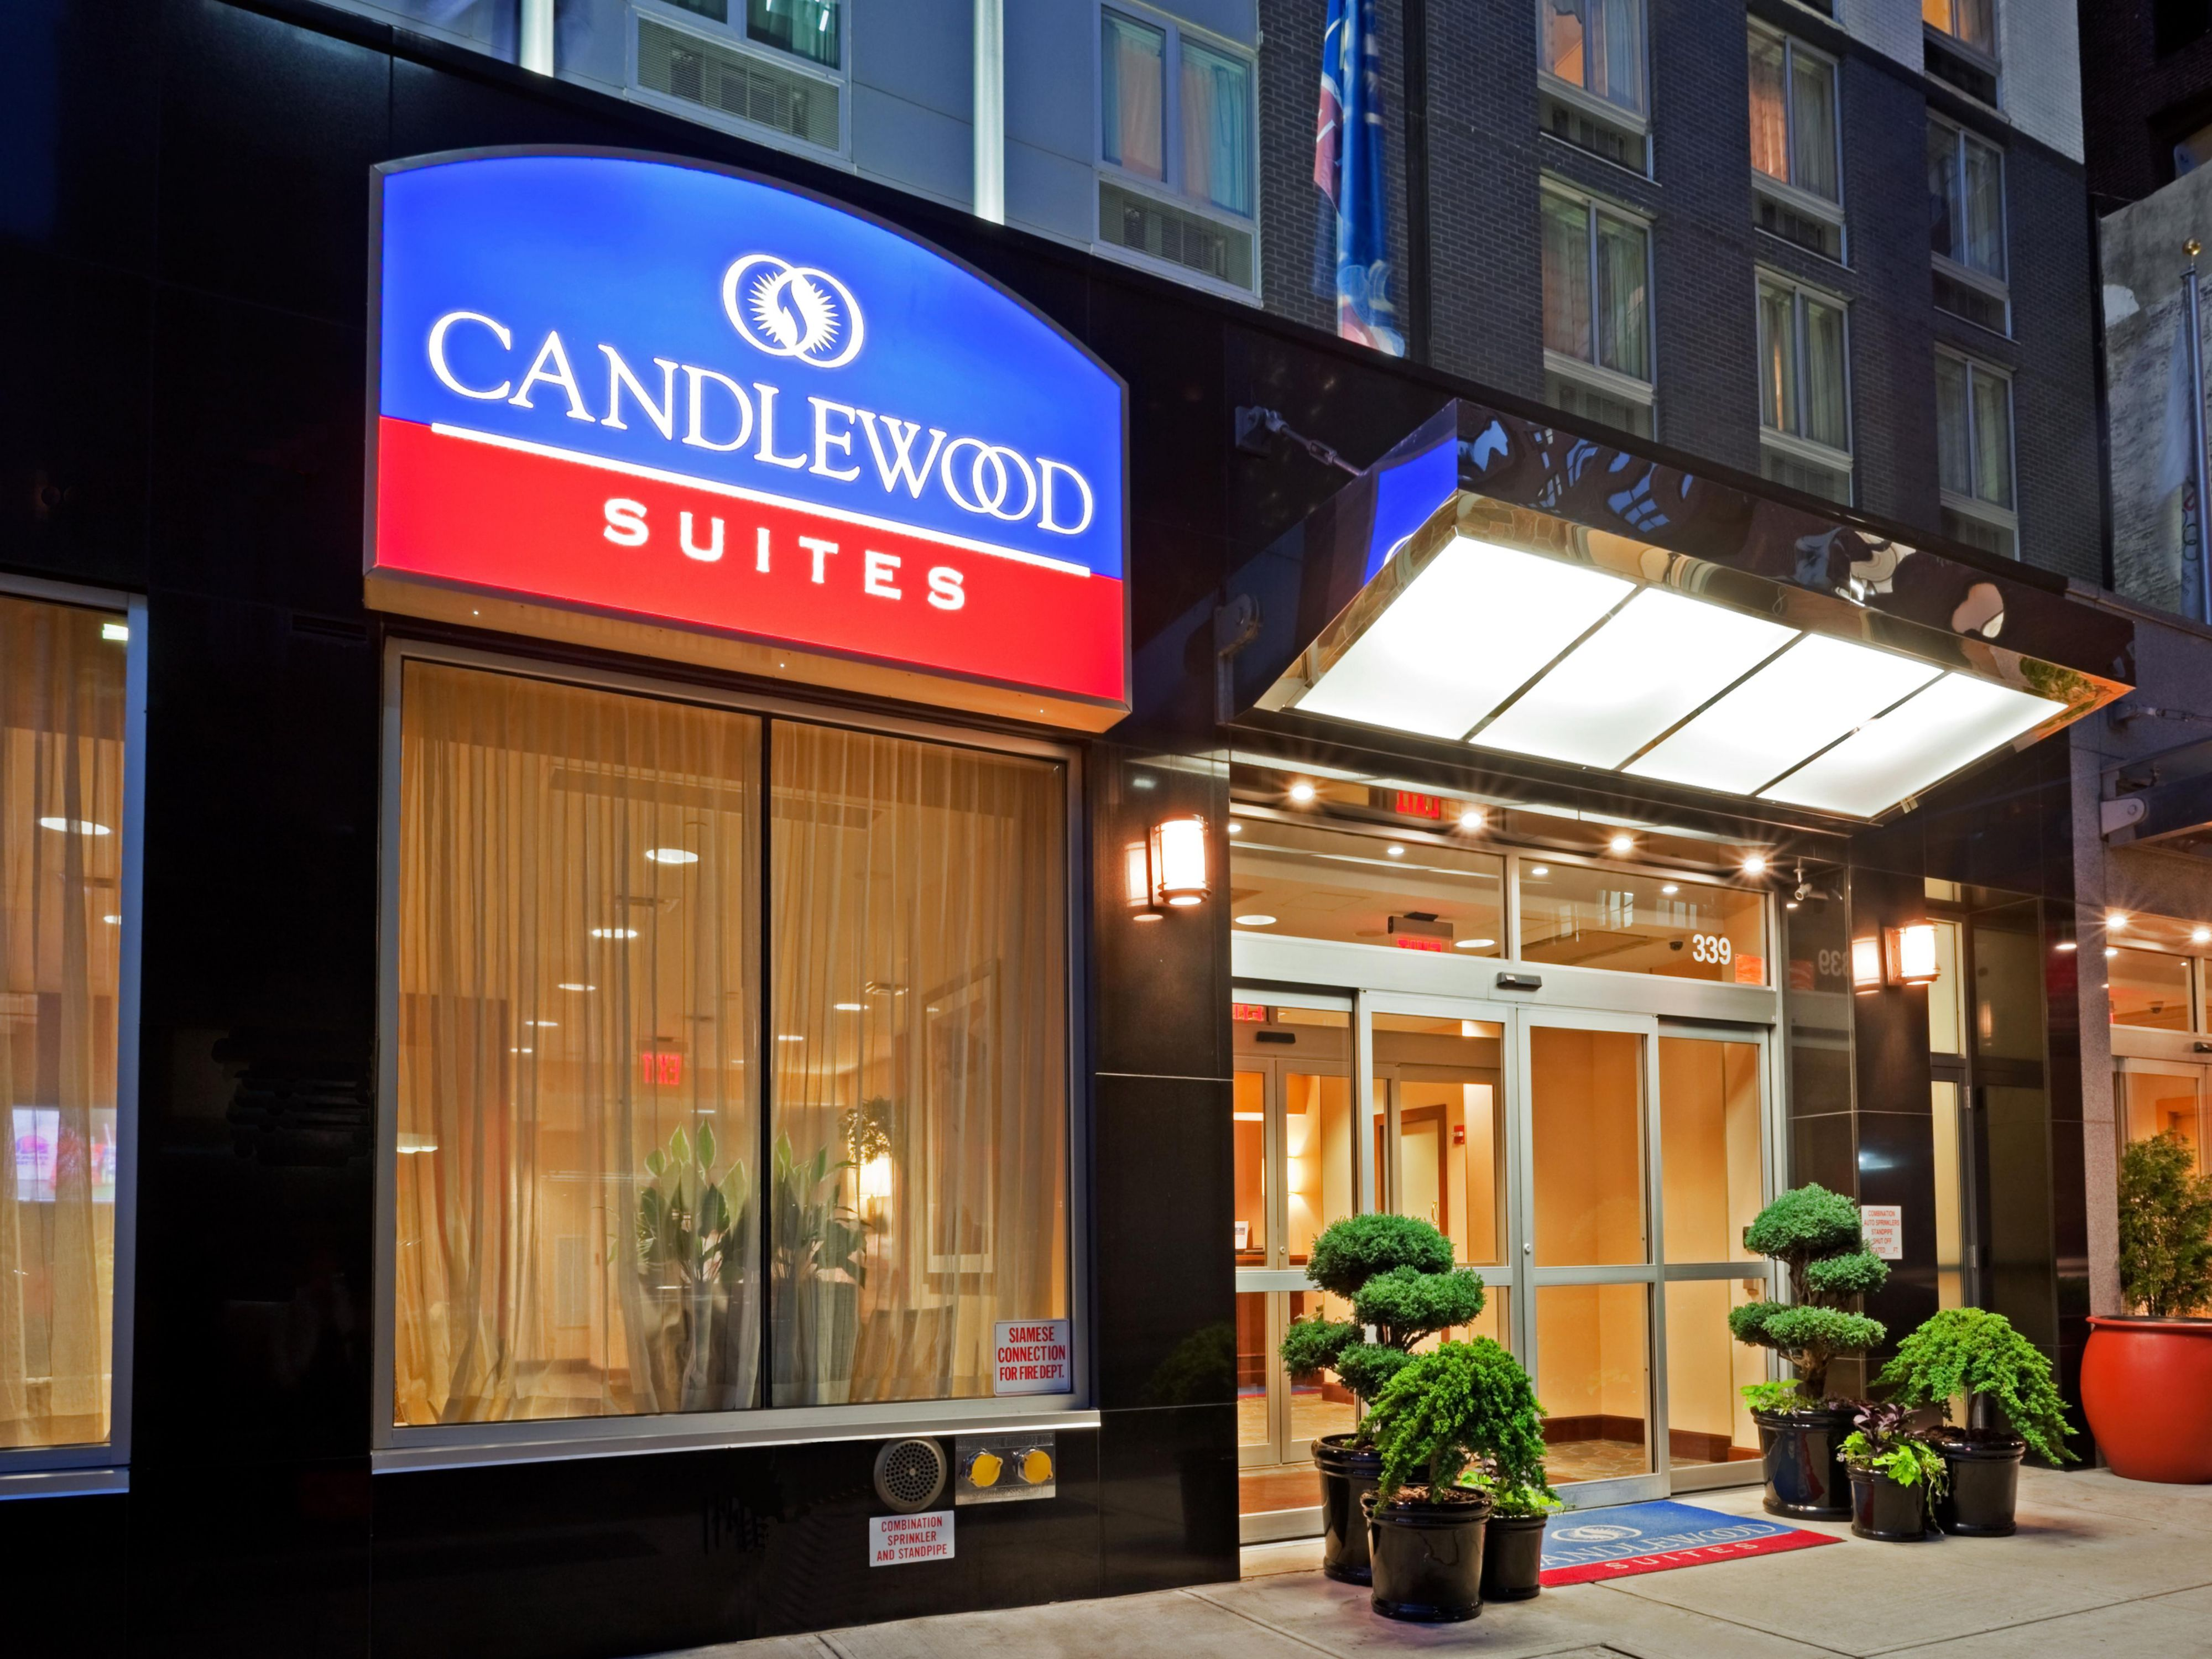 Things to do in new york near candlewood suites new york for Things to do near times square